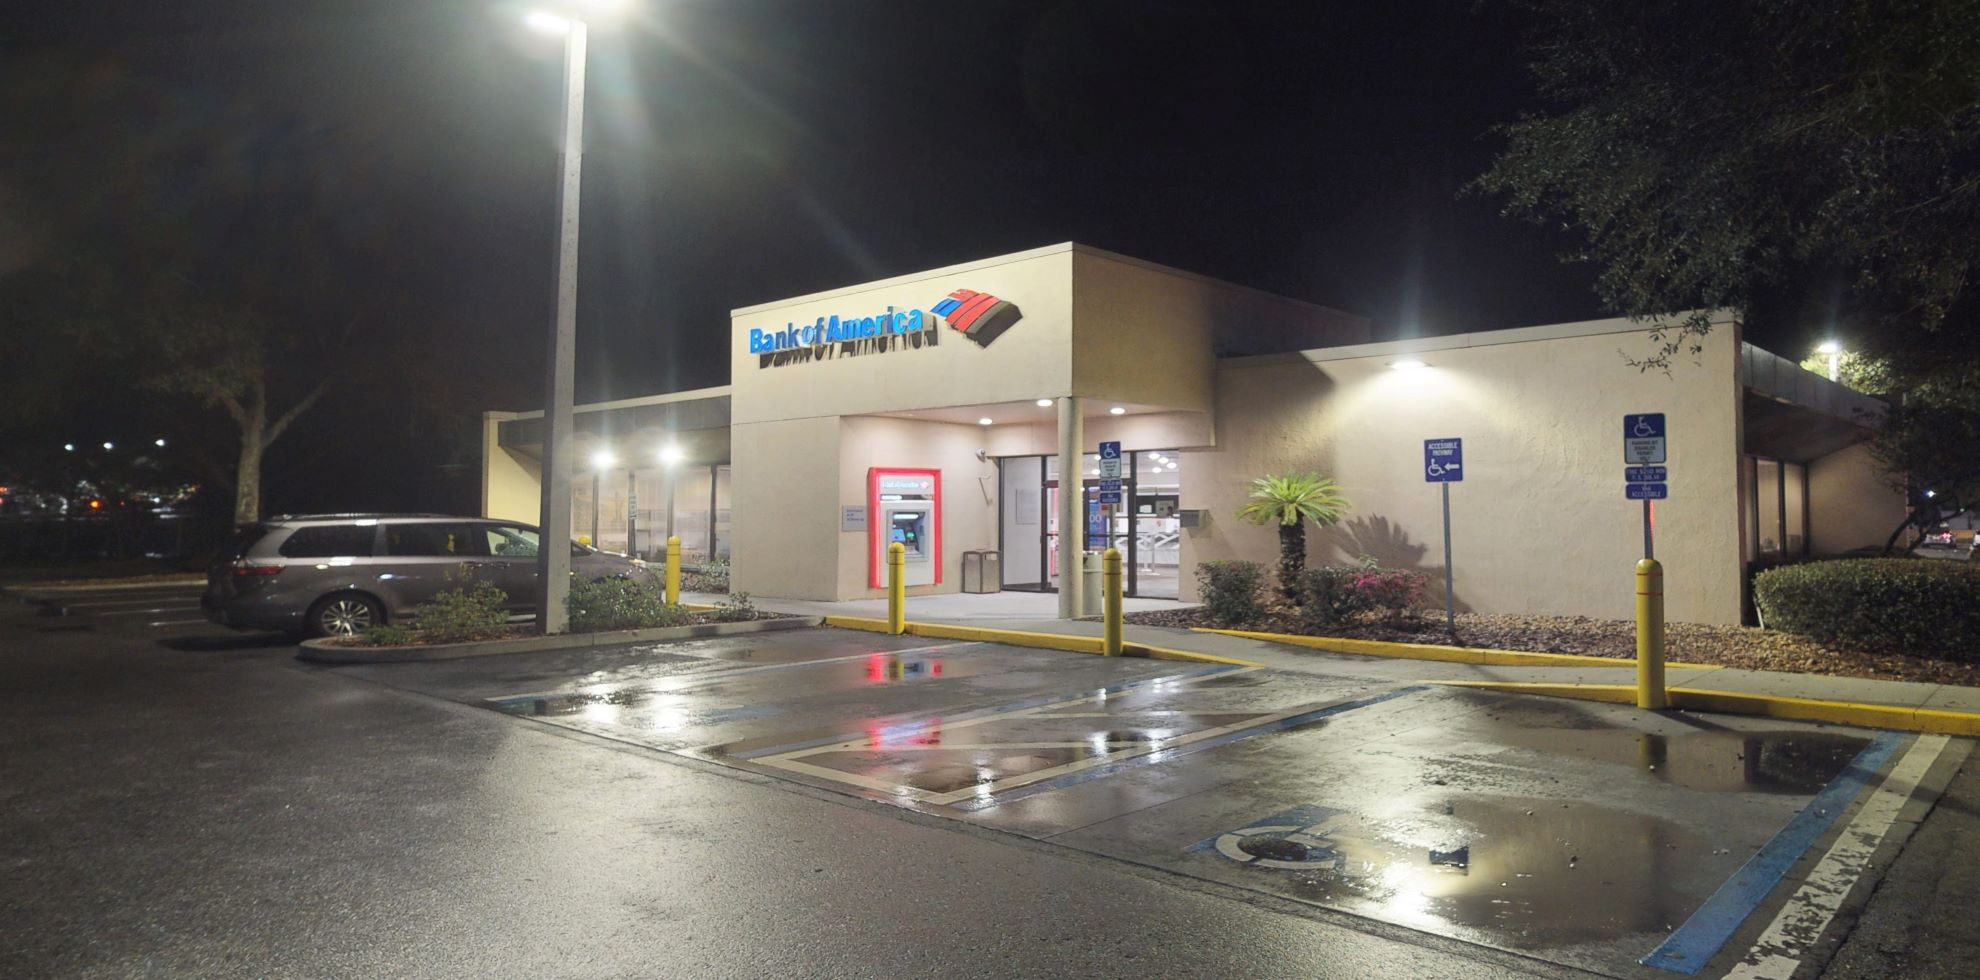 Bank of America financial center with drive-thru ATM and teller   7606 W Newberry Rd, Gainesville, FL 32606